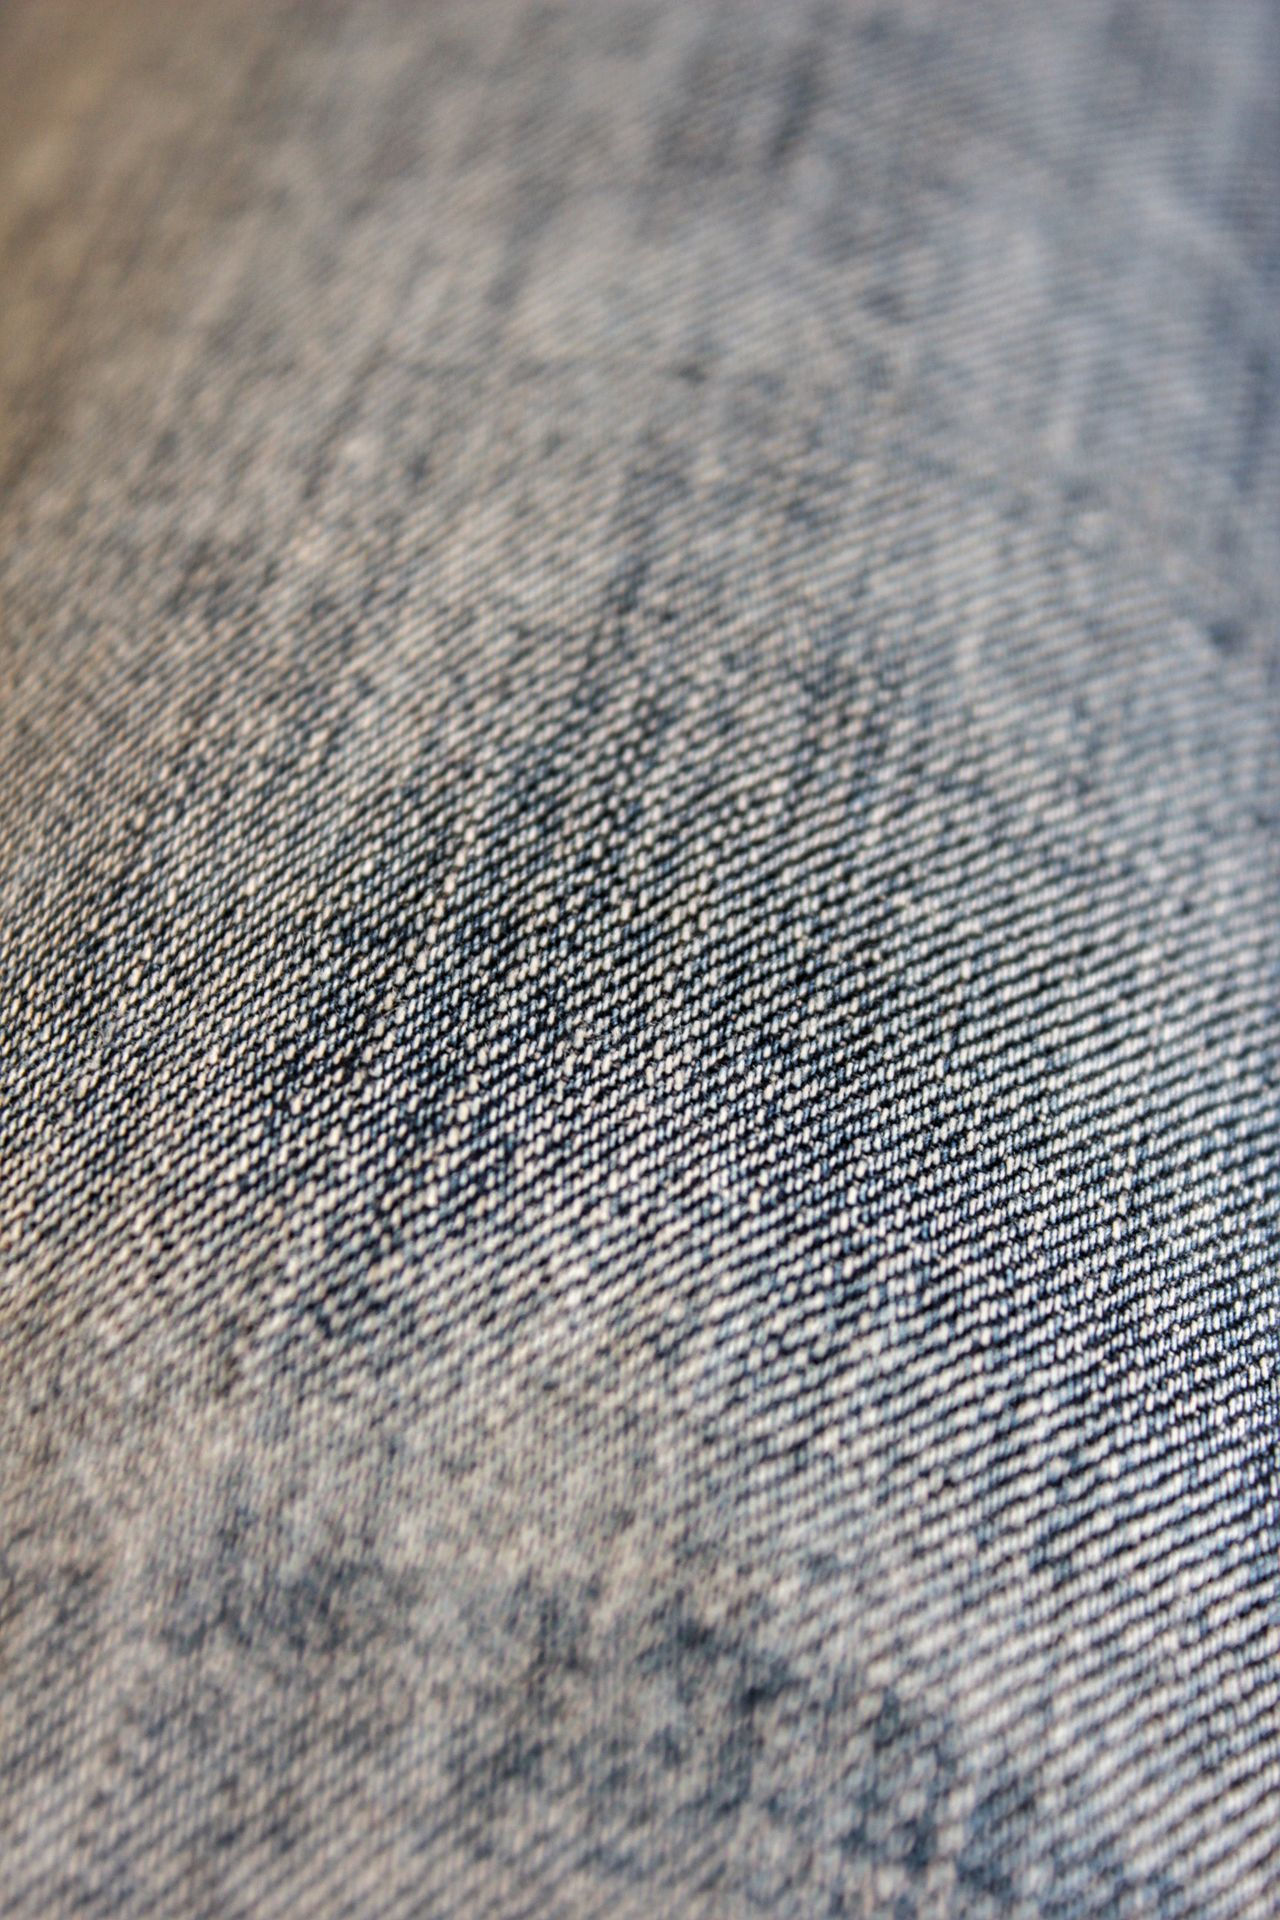 Denim Denimjeans DenimLove Material Denim Material Denim Close Up Denim Pattern Denim Clothes Denim Jeans Jeans Blue Jeans Blue Denim Faded Denim Faded Blue Denim Canon EOS 600D DSLR Canon EOS 600D